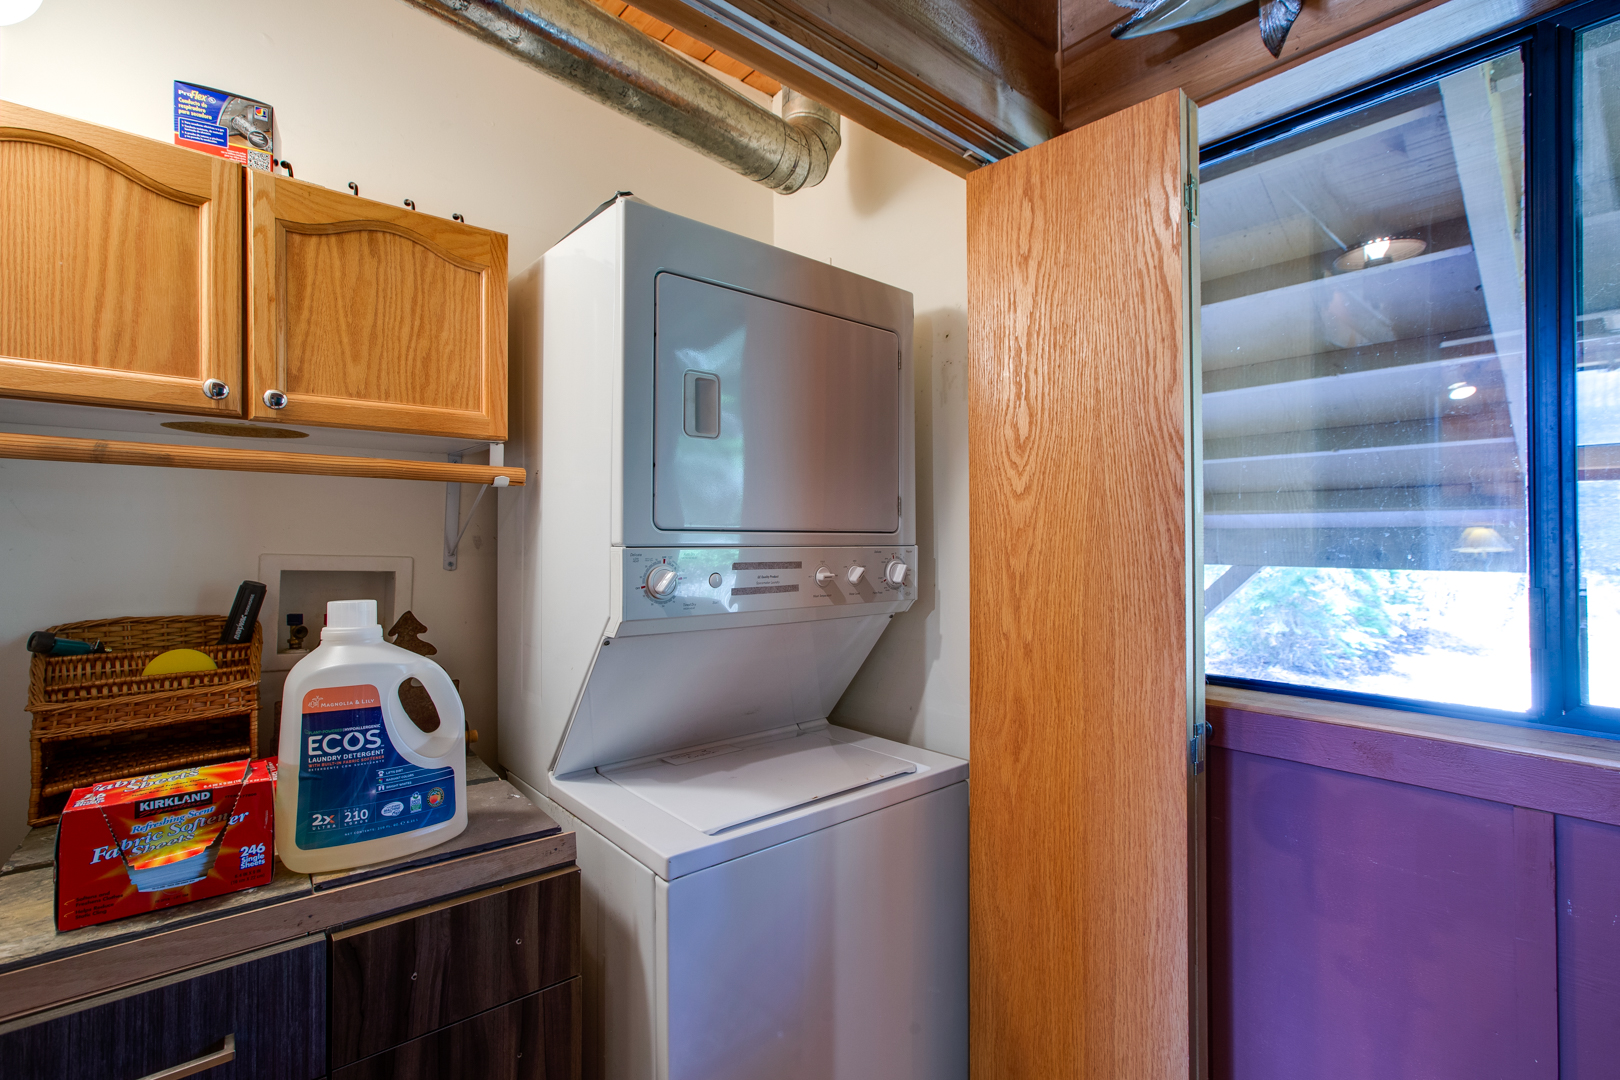 Laundry space in closet